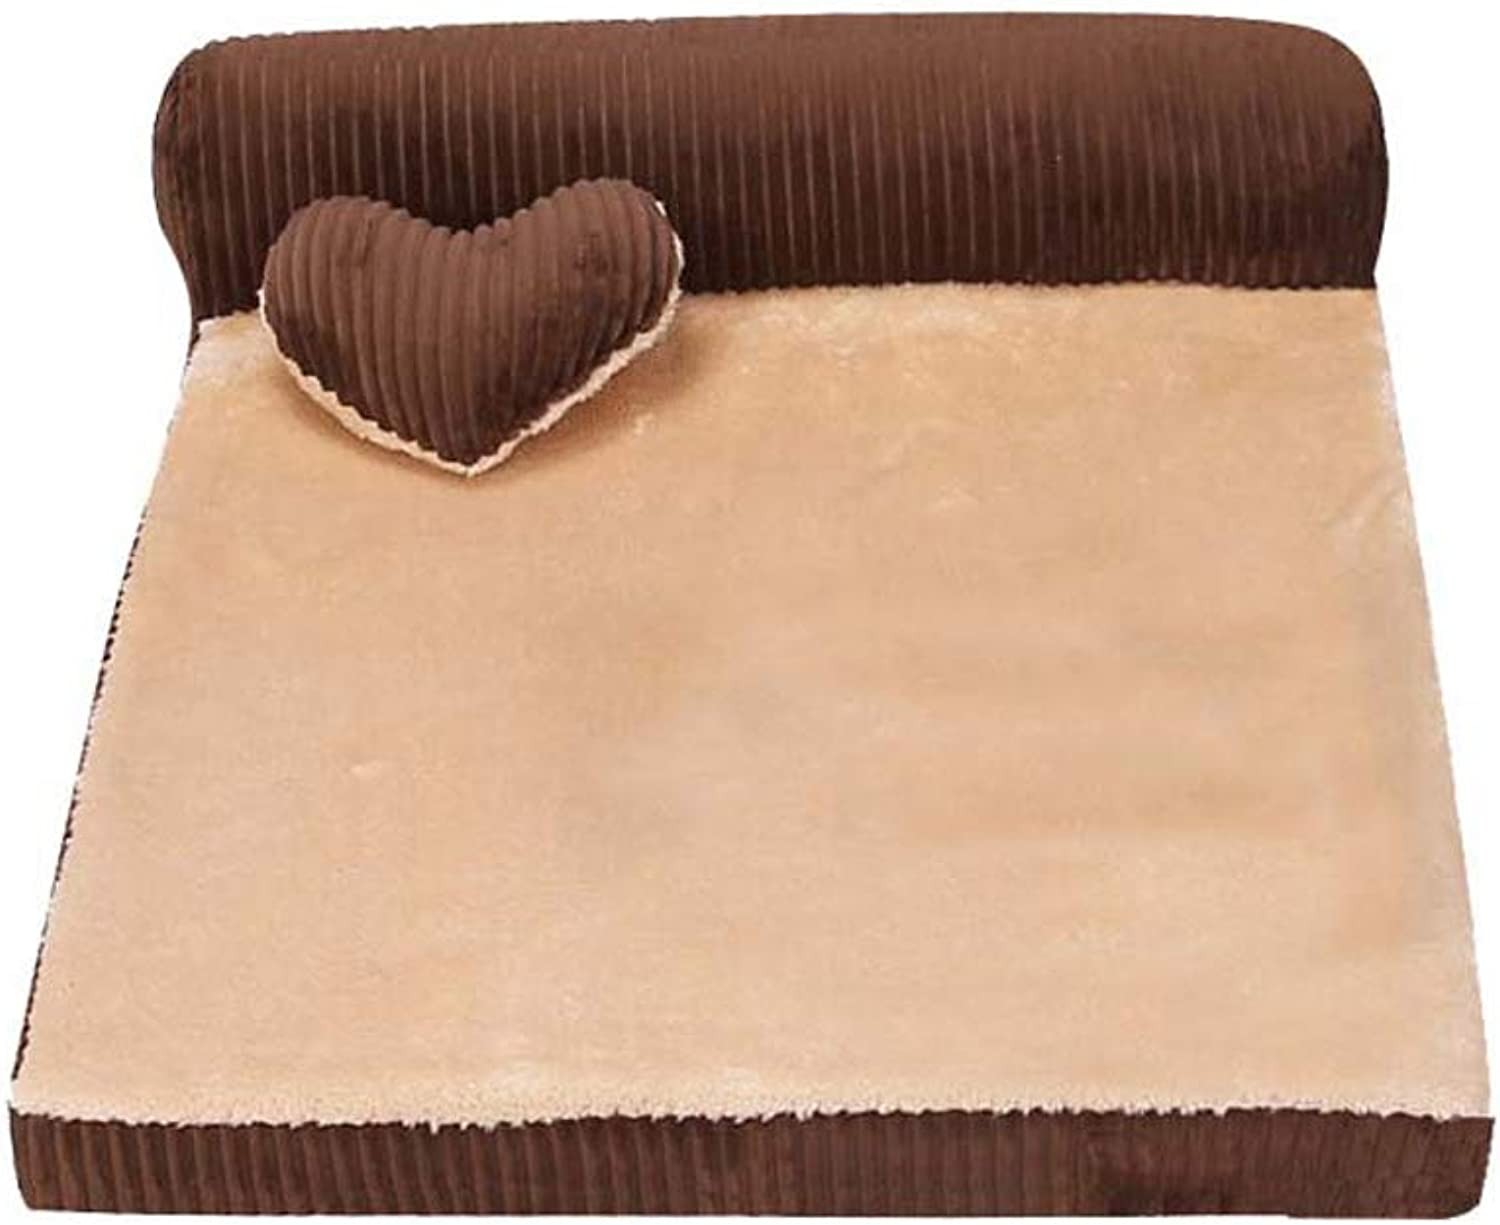 C_1X Kennel, Washable, Dog Bed, Dog Mat, Warm, Pet Nest, Dog House, Four Seasons Universal, Suitable for Cats and Dogs Pets(Brown, Red) (color   Brown, Size   S 55  45  15cm)